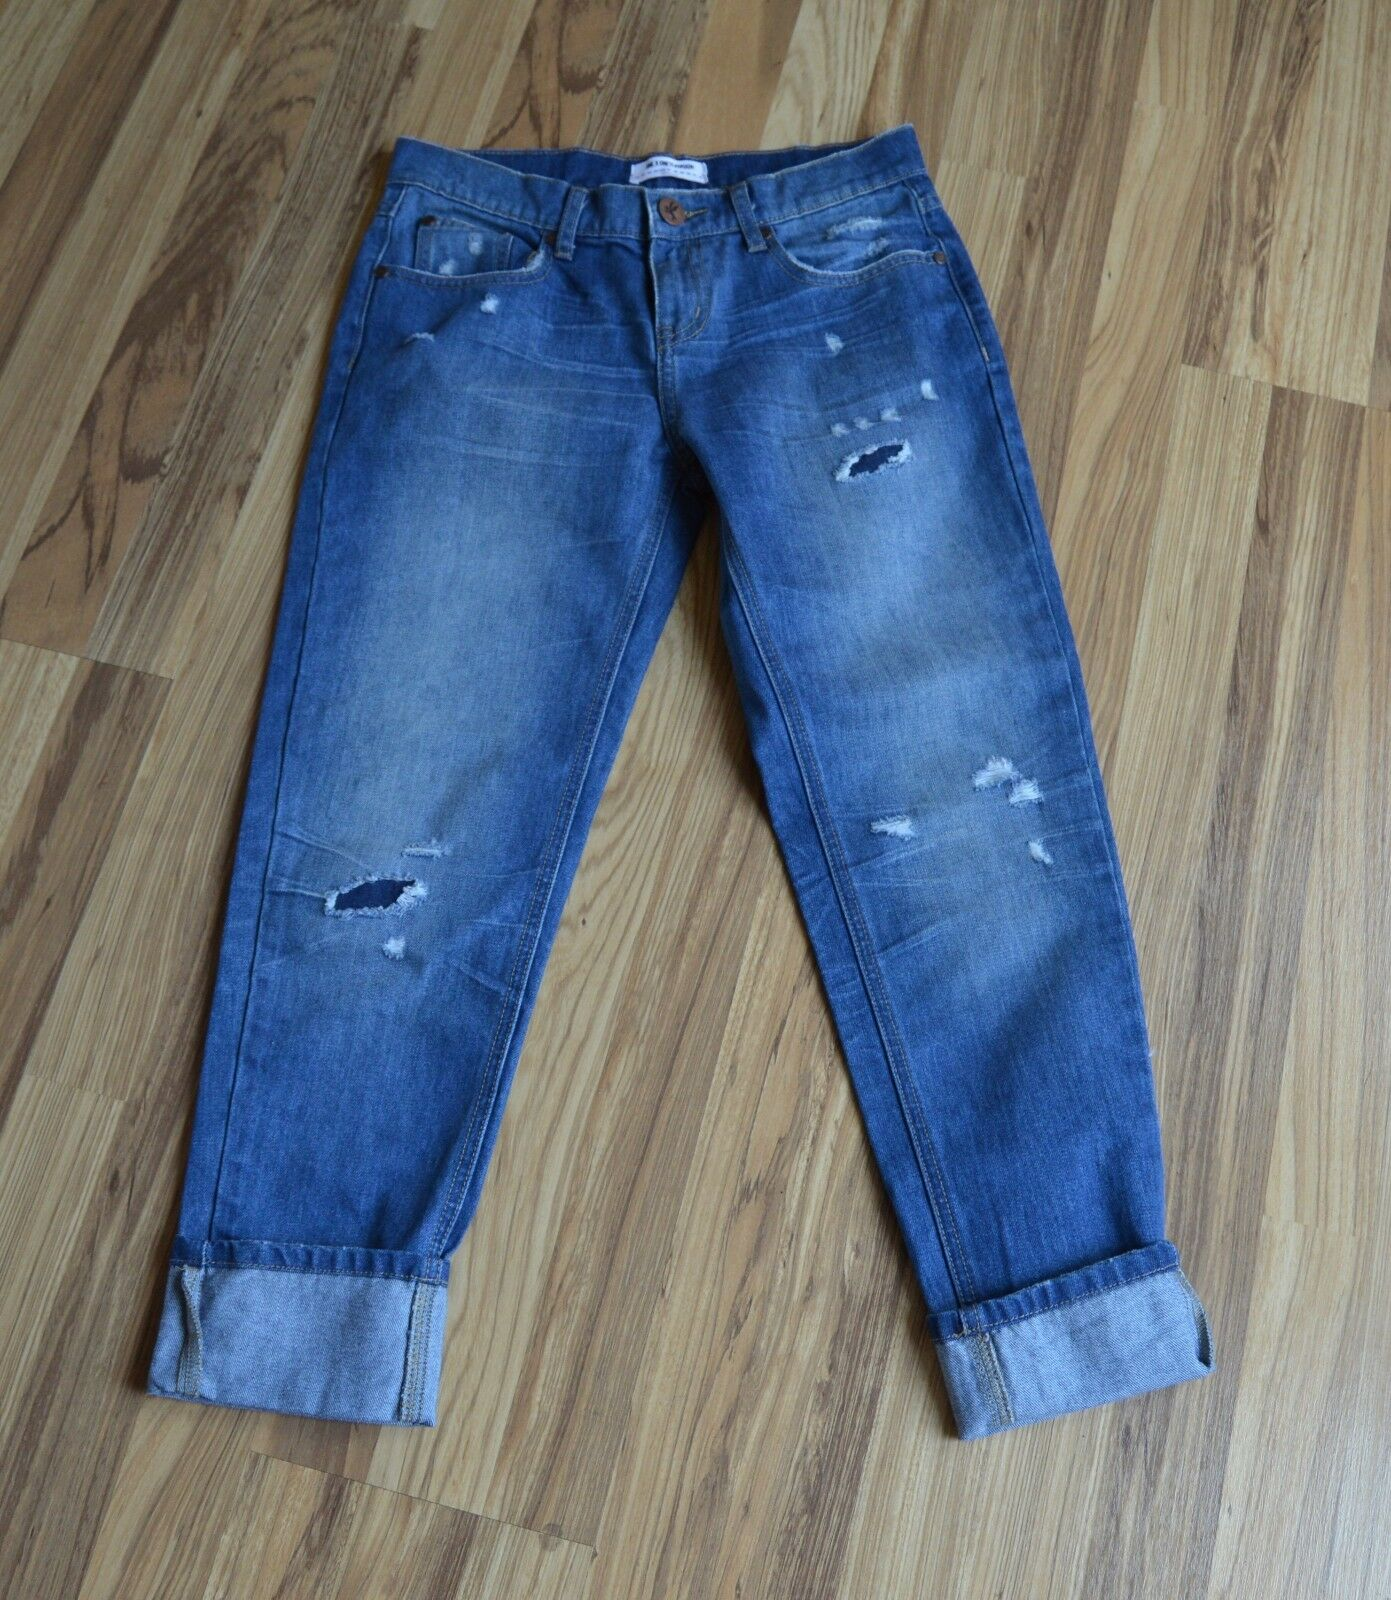 NWOT  One X One Teaspoon Destressed Awesome Baggies Jeans Sz 26 Low Rise